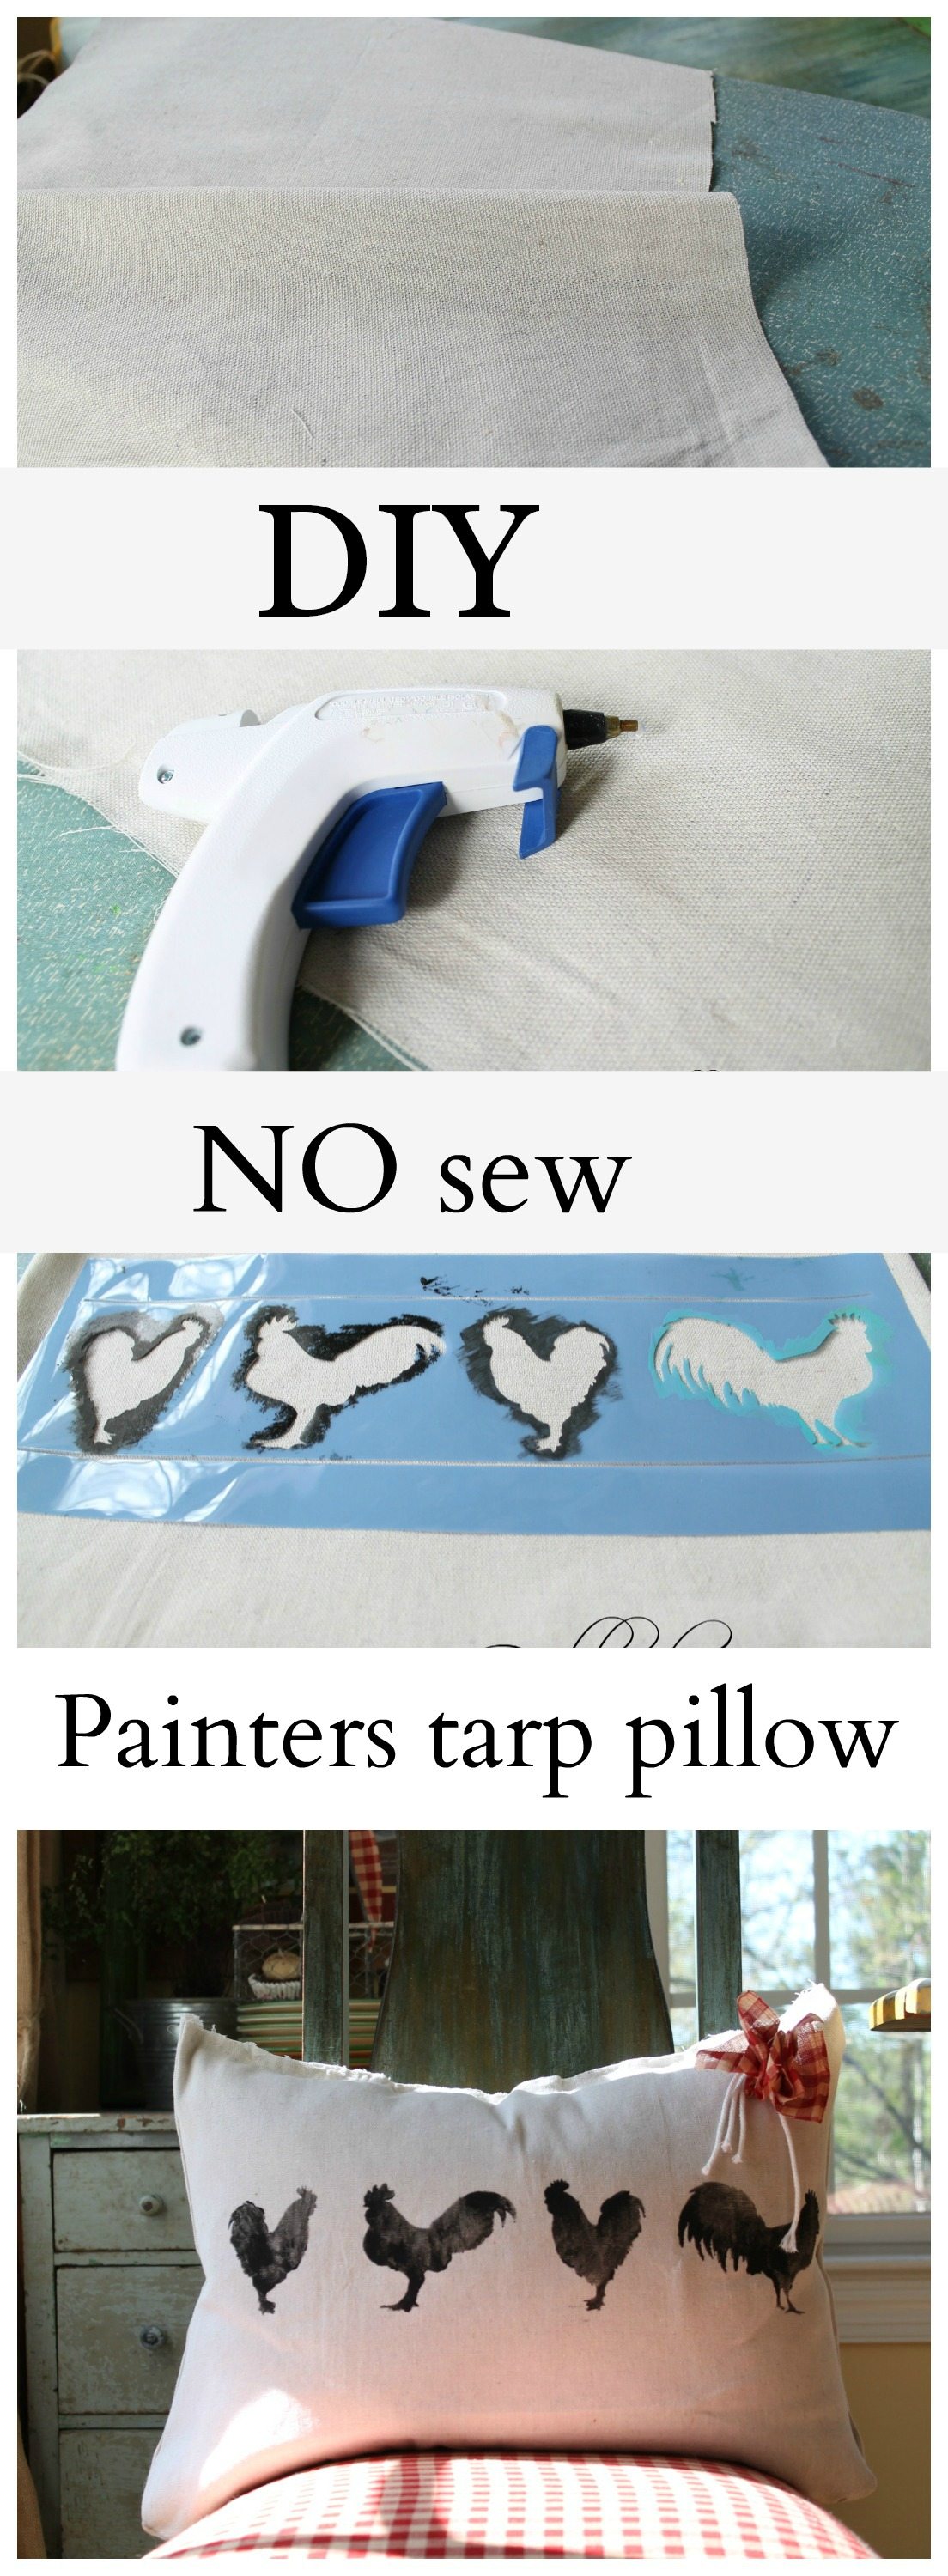 diy no sew painters tarp pillow